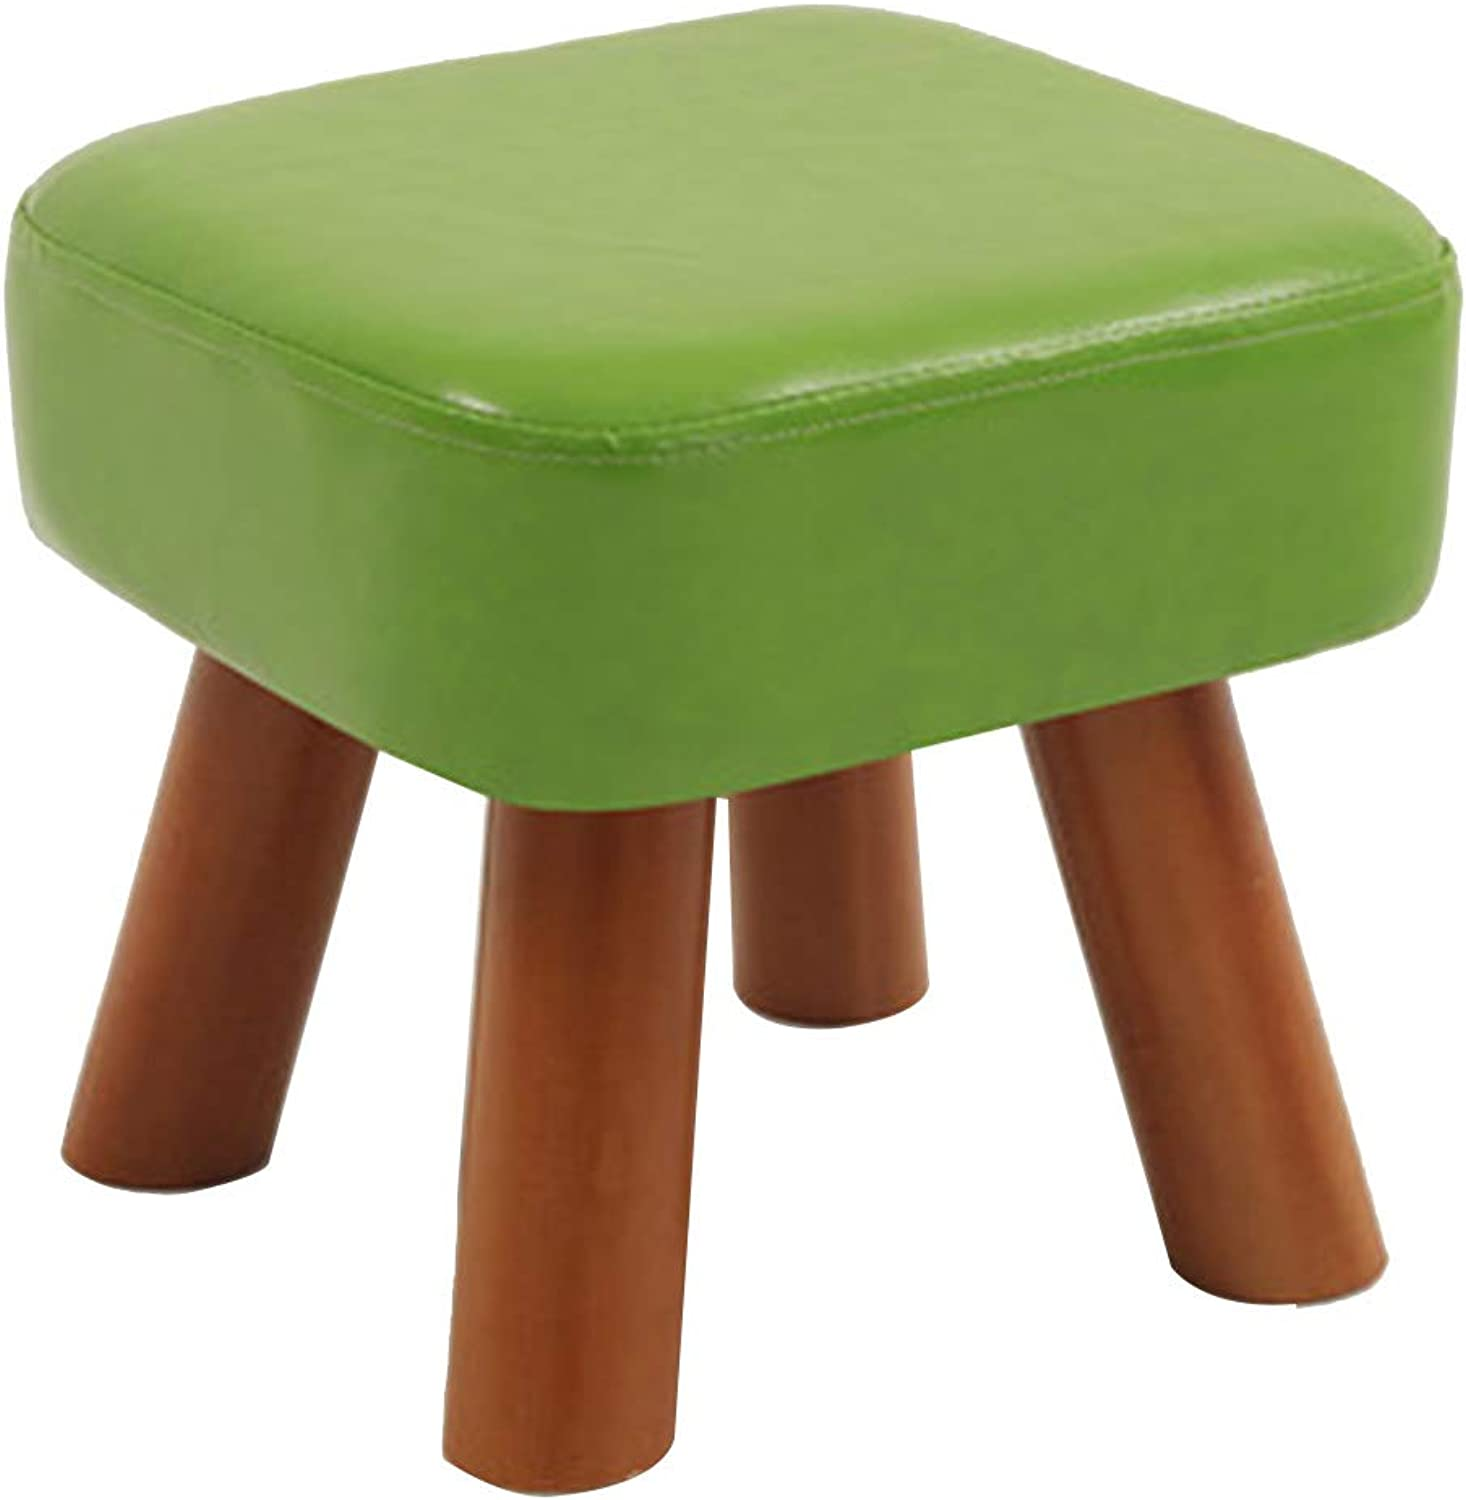 Footstool Simple Faux Leather Stool Multifunction Change shoes Living Room, Pine, 5 colors (color   C)